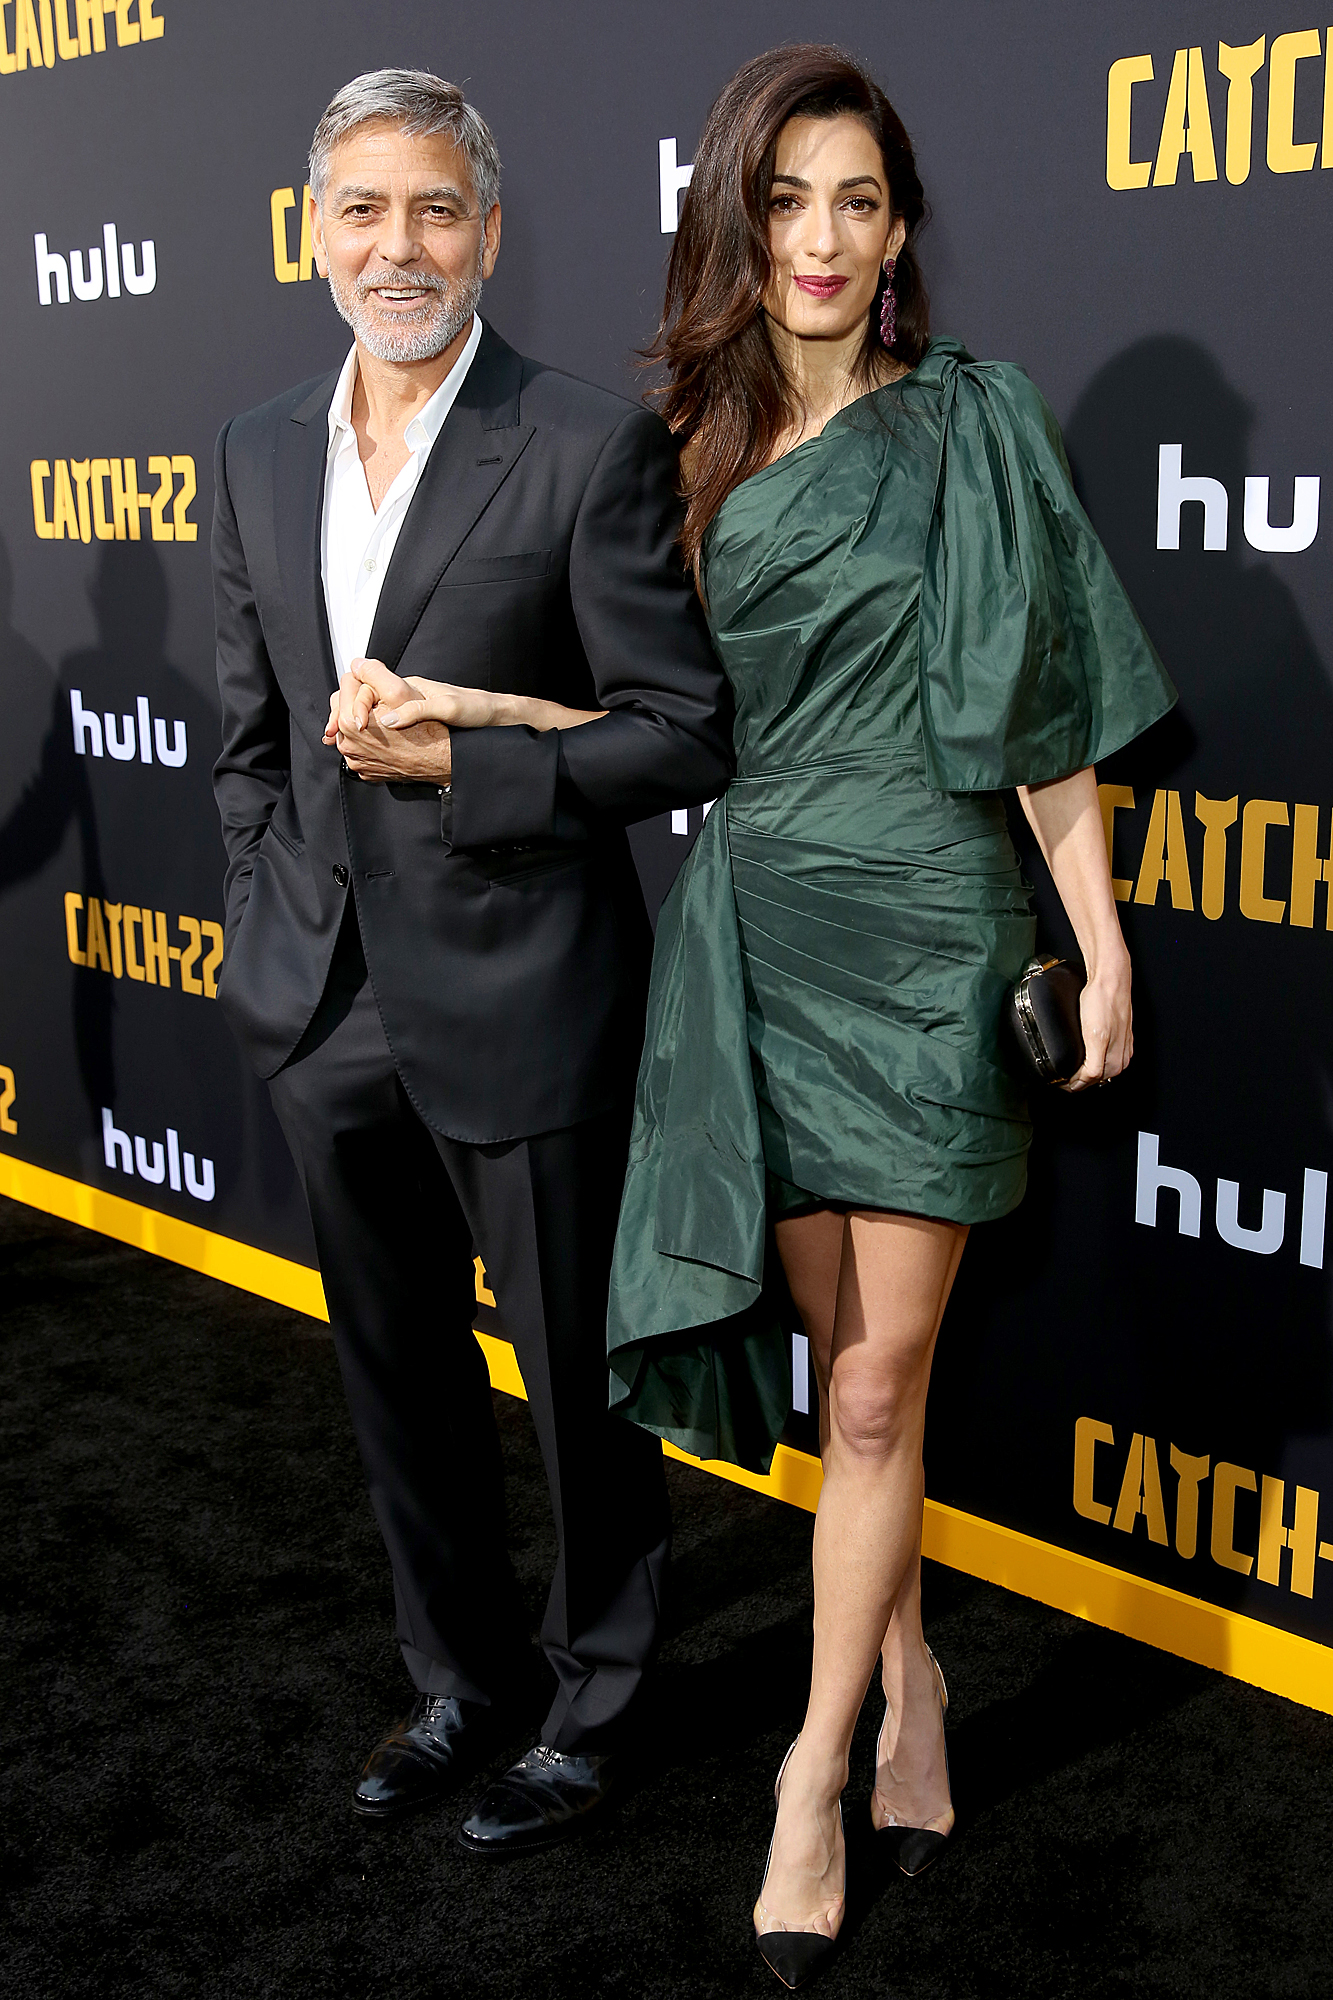 Hollywood Premiere of 'Catch-22,' 2019